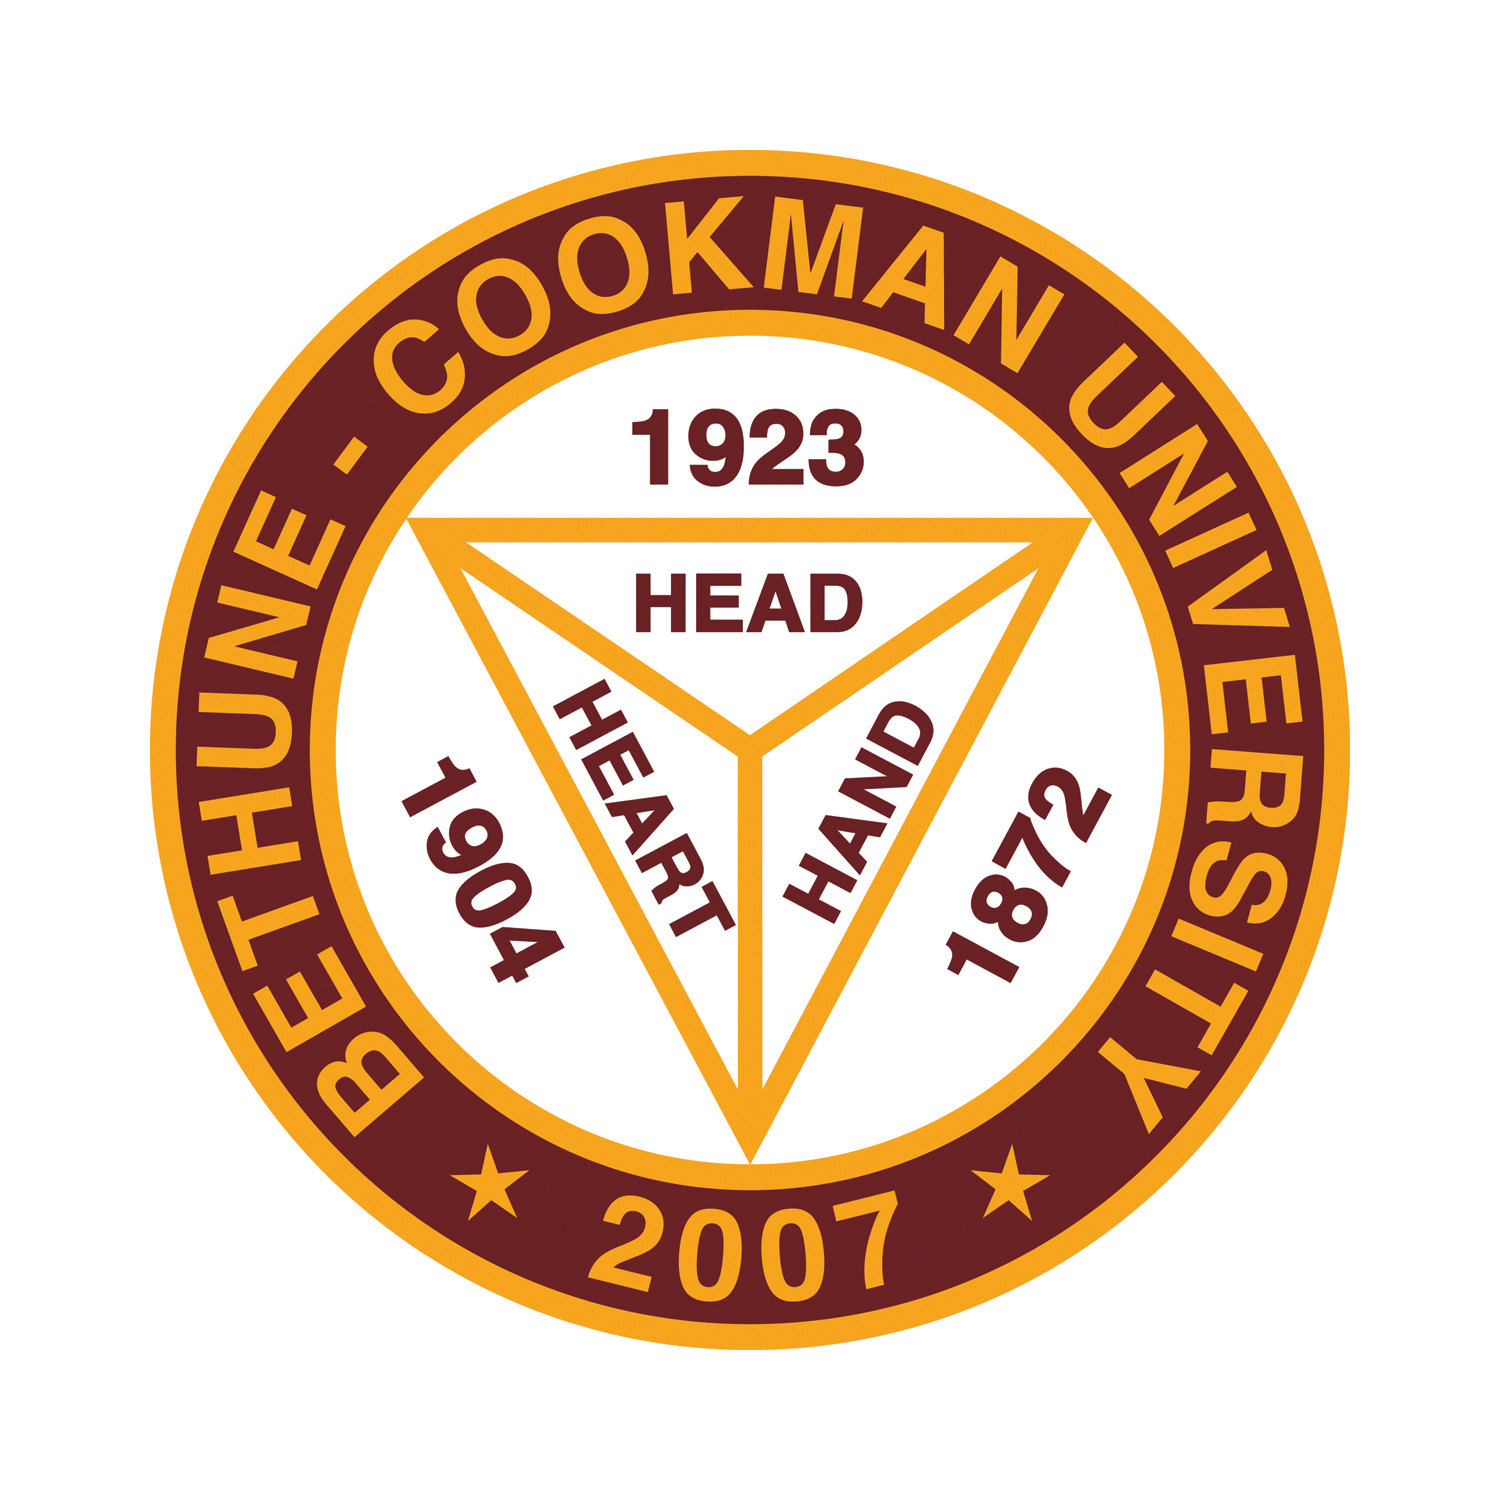 Bethune Cookman Seal